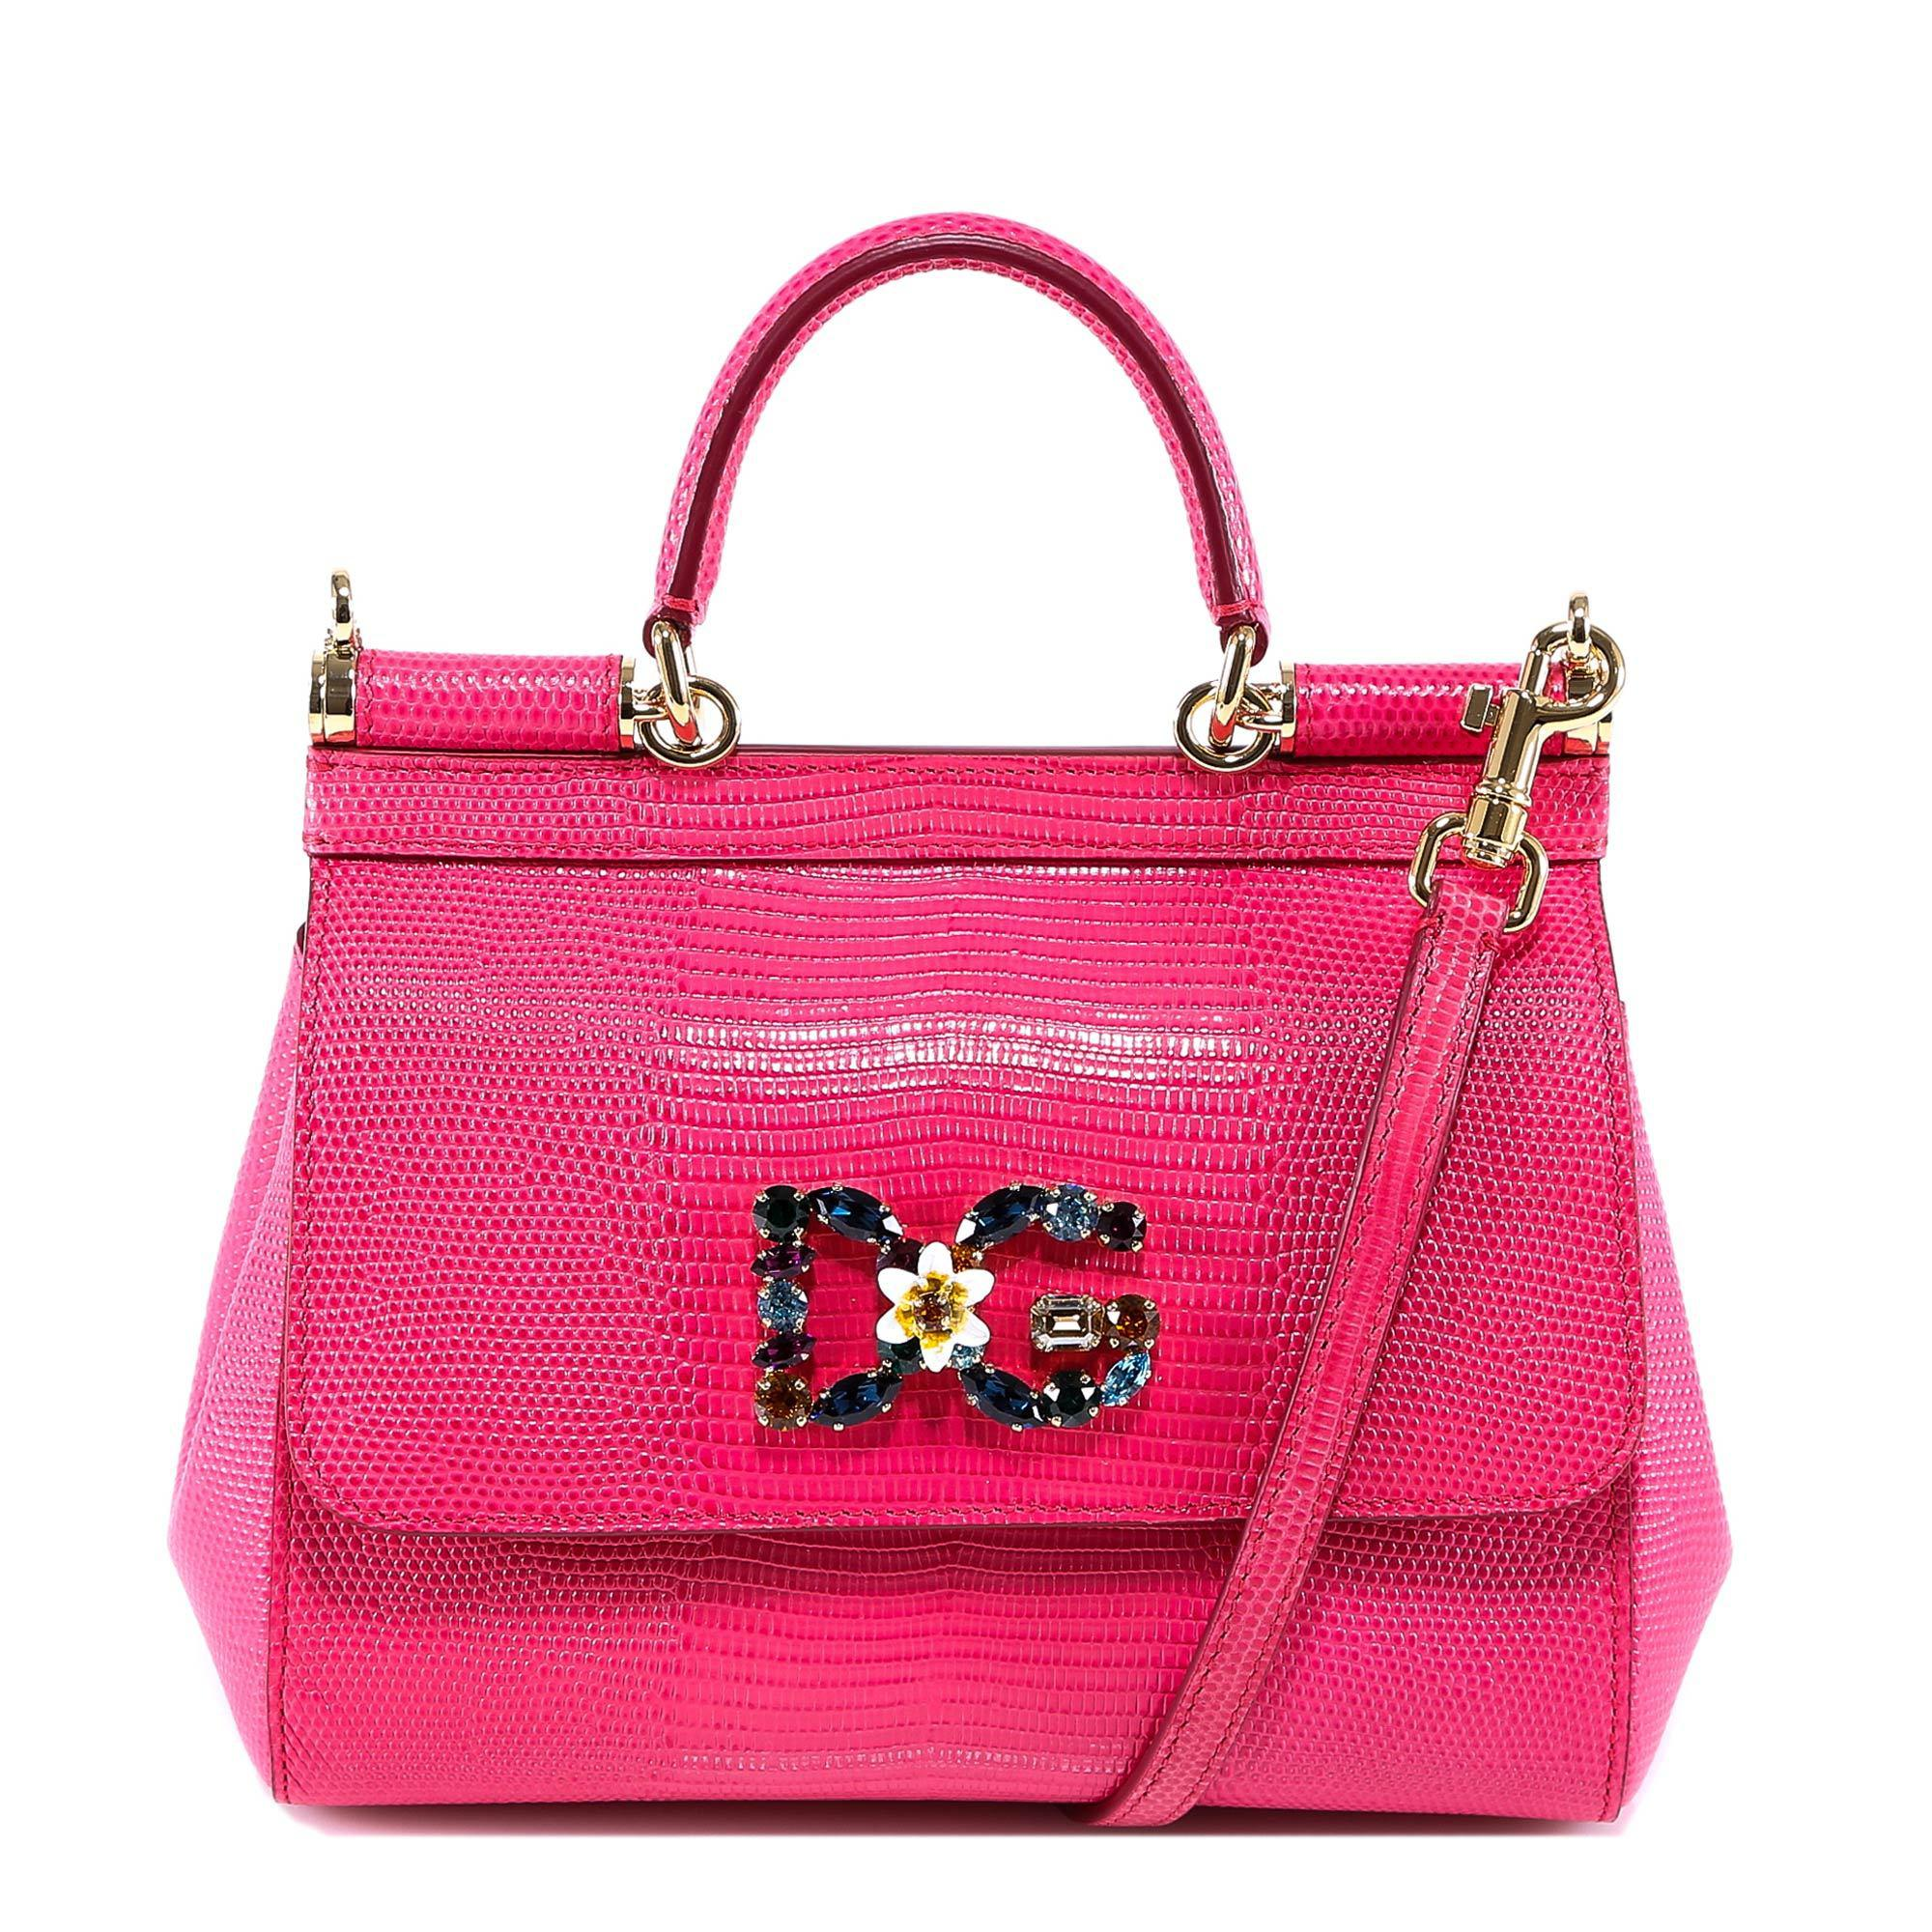 c9dac45235ce Dolce   Gabbana Small Sicily Tote Bag in Pink - Lyst